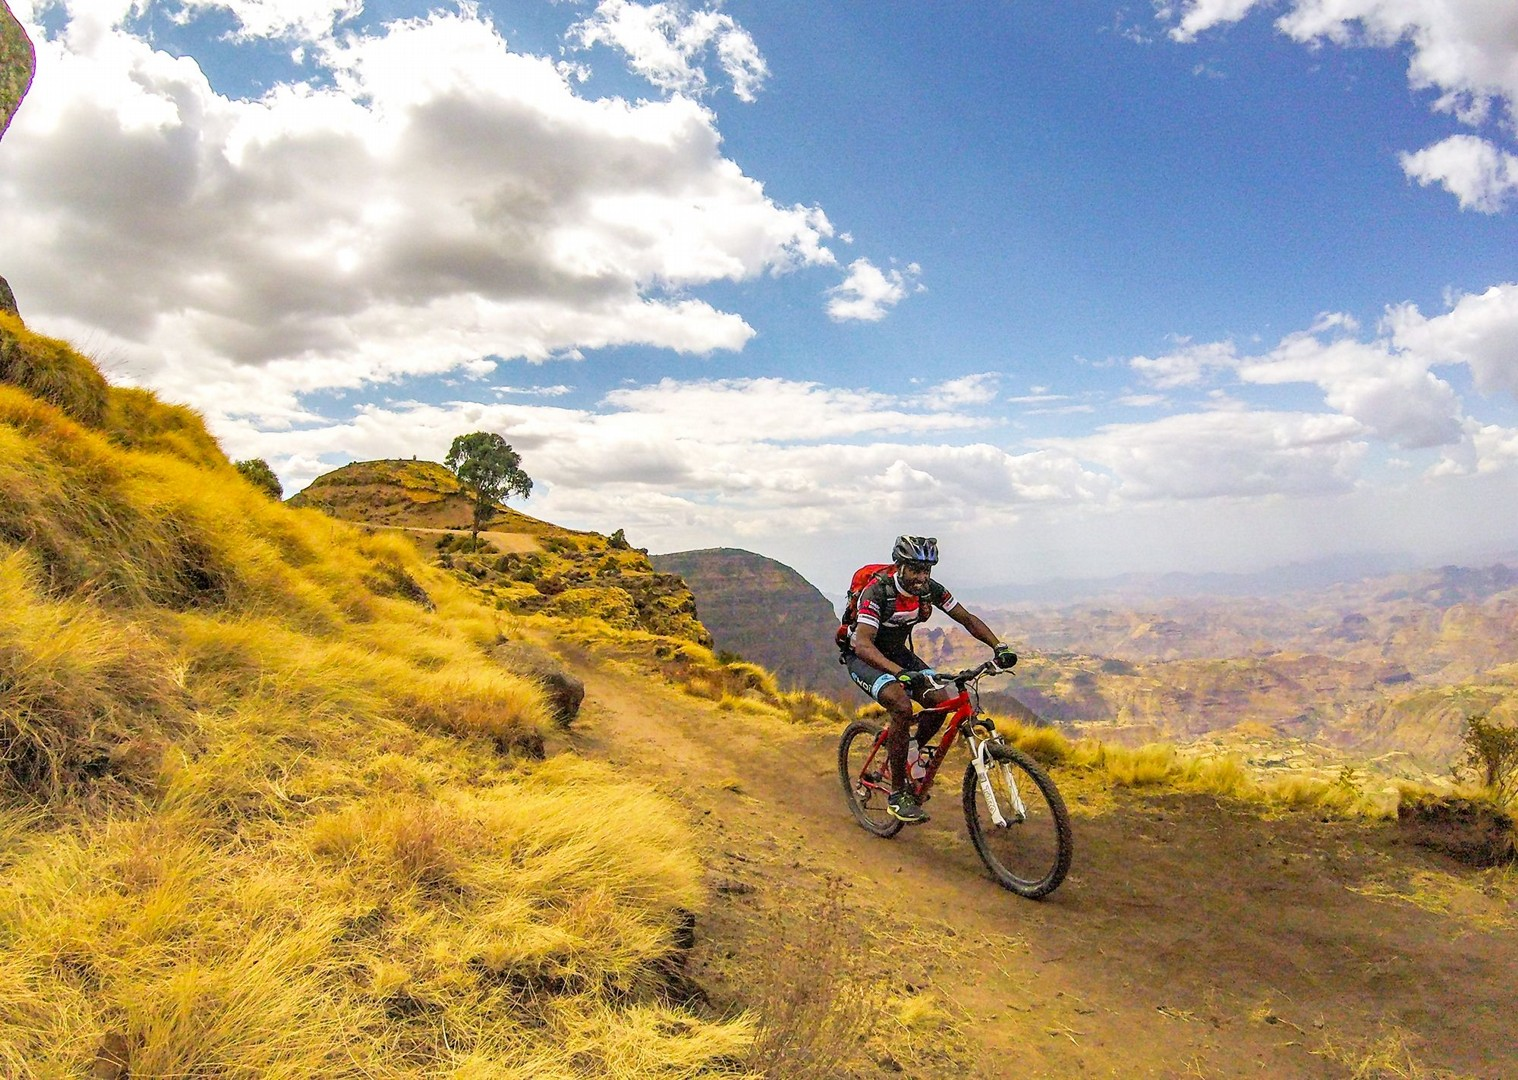 ethiopia-enchanting-trip-adventures-cycling-holiday.jpg - NEW! Ethiopia - Enchanting Ethiopia - Cycling Adventures